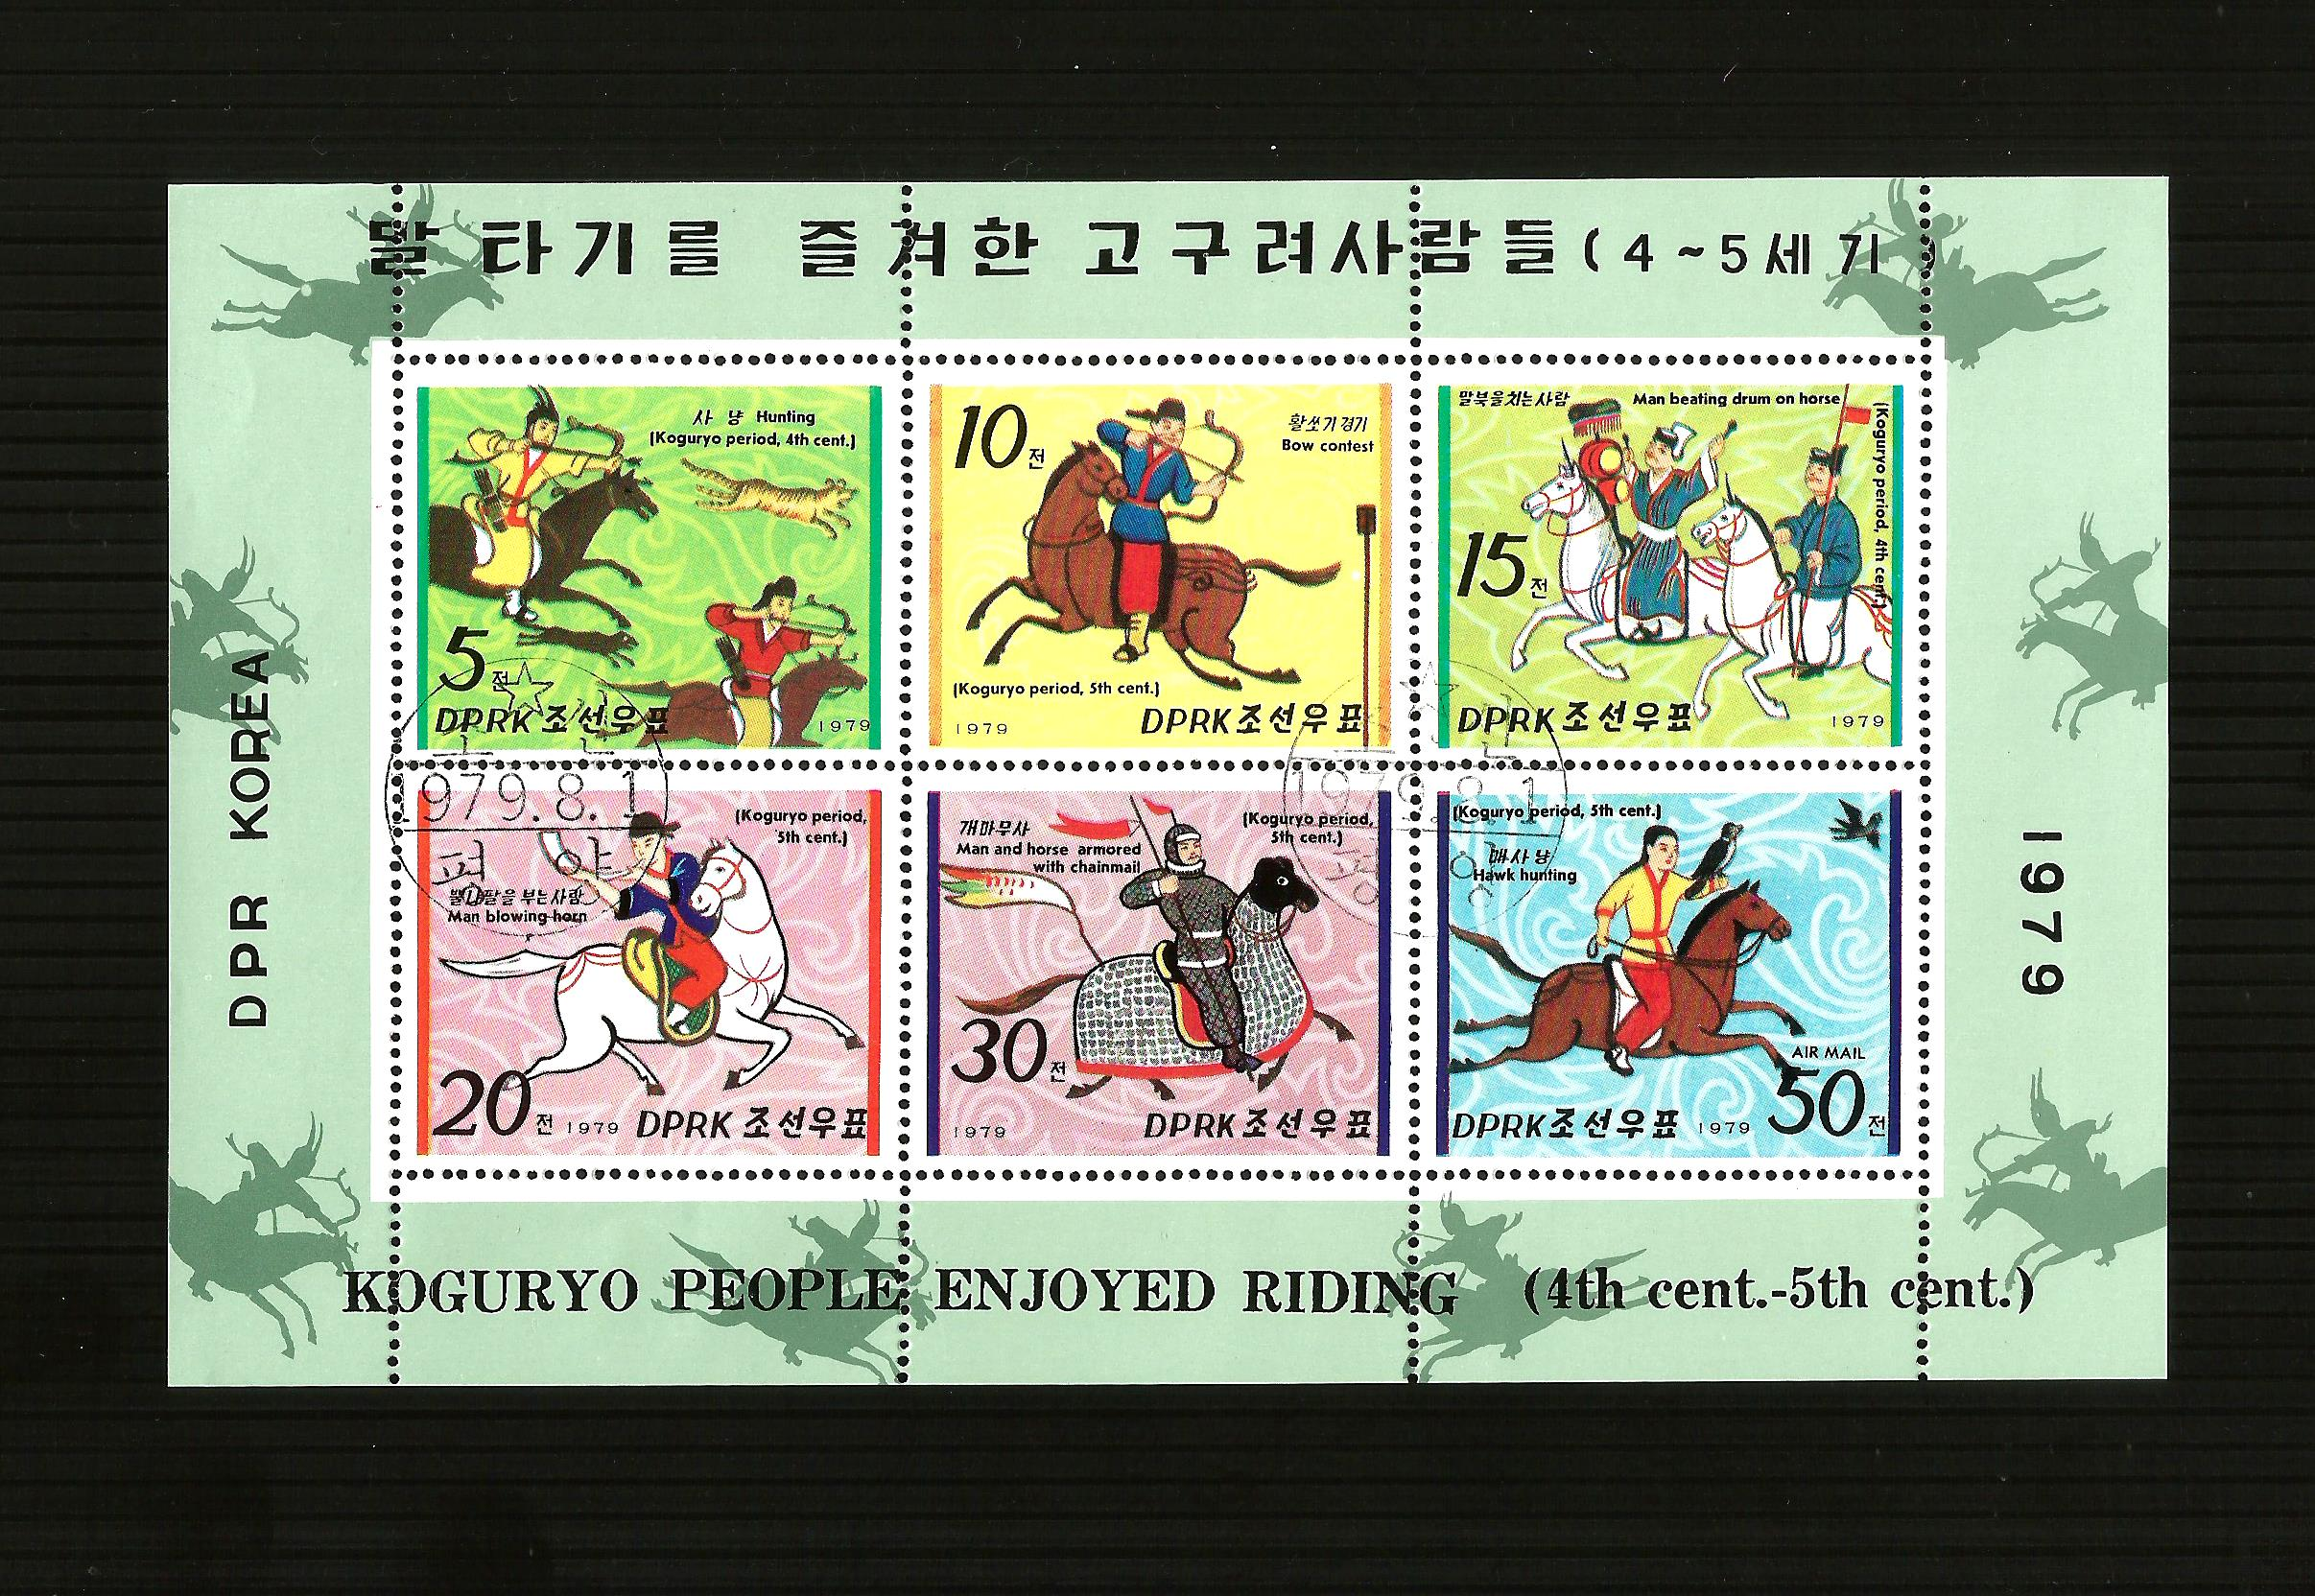 KOREA: - 1979 KOGURYO RIDING - MINISHEET - UNMOUNTED USED